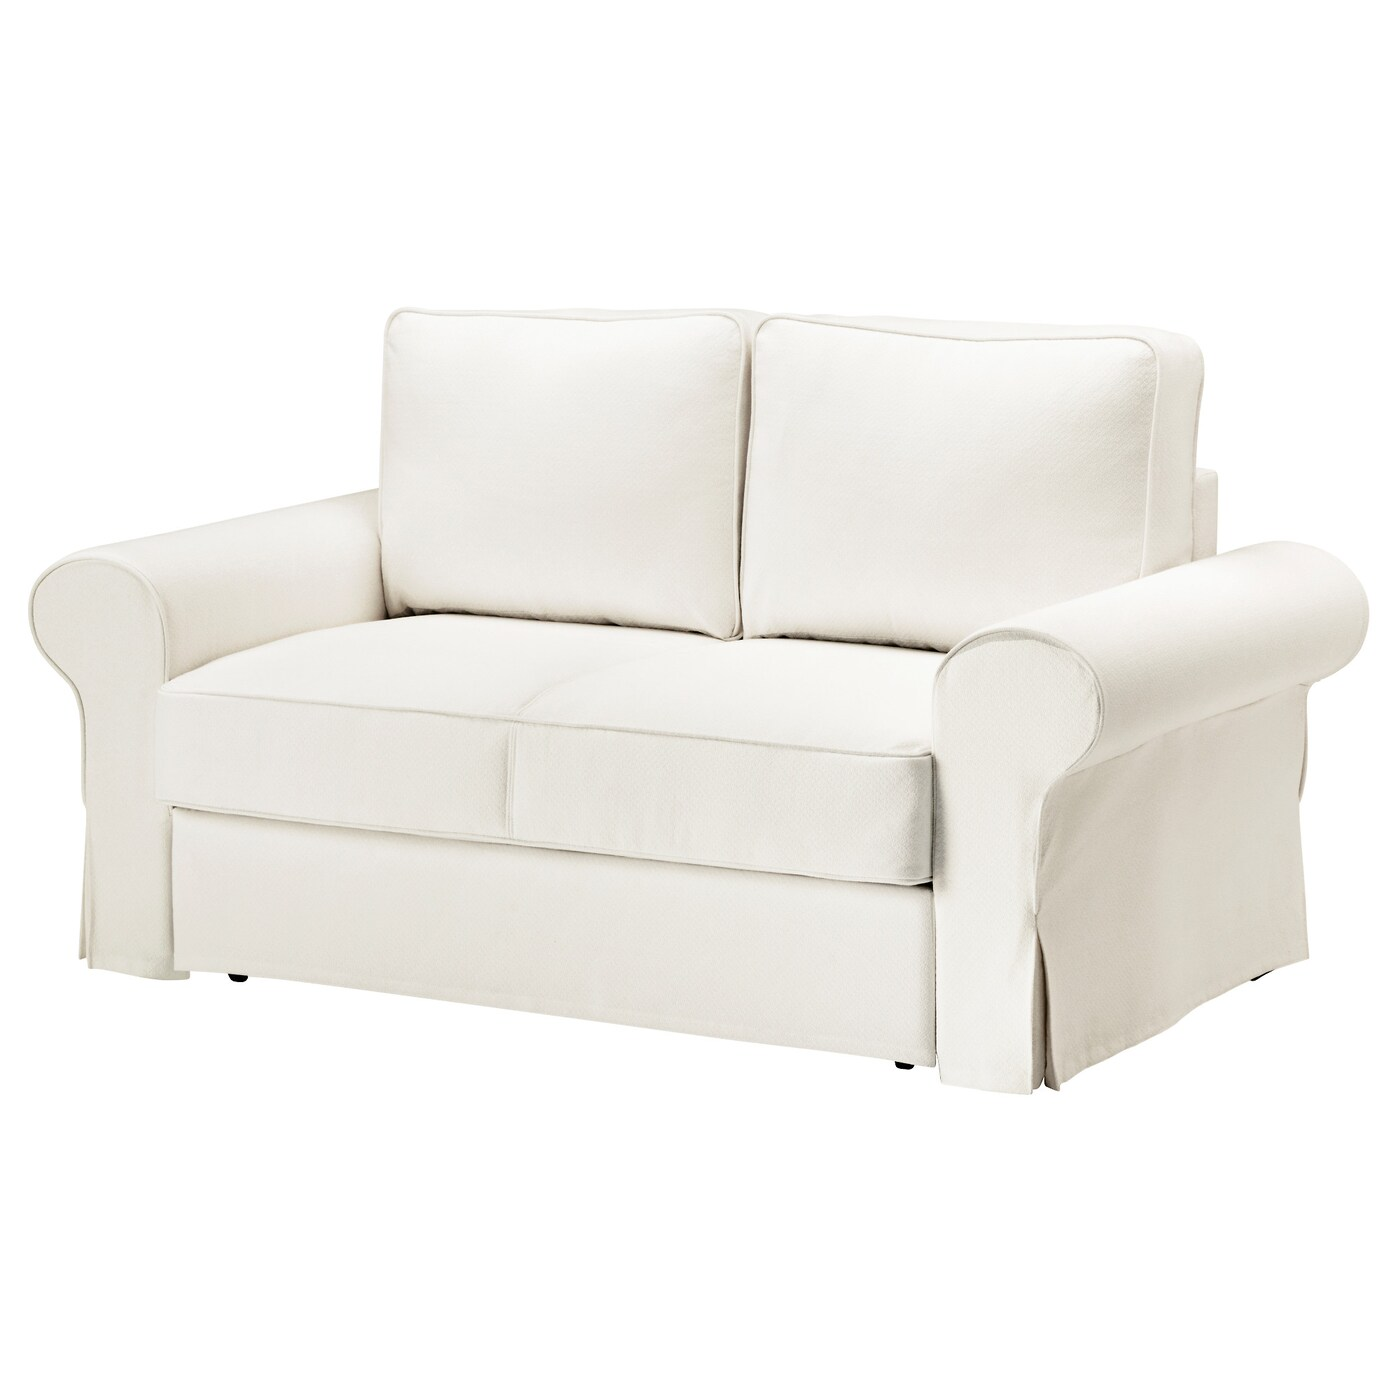 Ektorp Sofa Vittaryd White White Sofa Ikea Inspirational Interior Style Concepts For Lounge